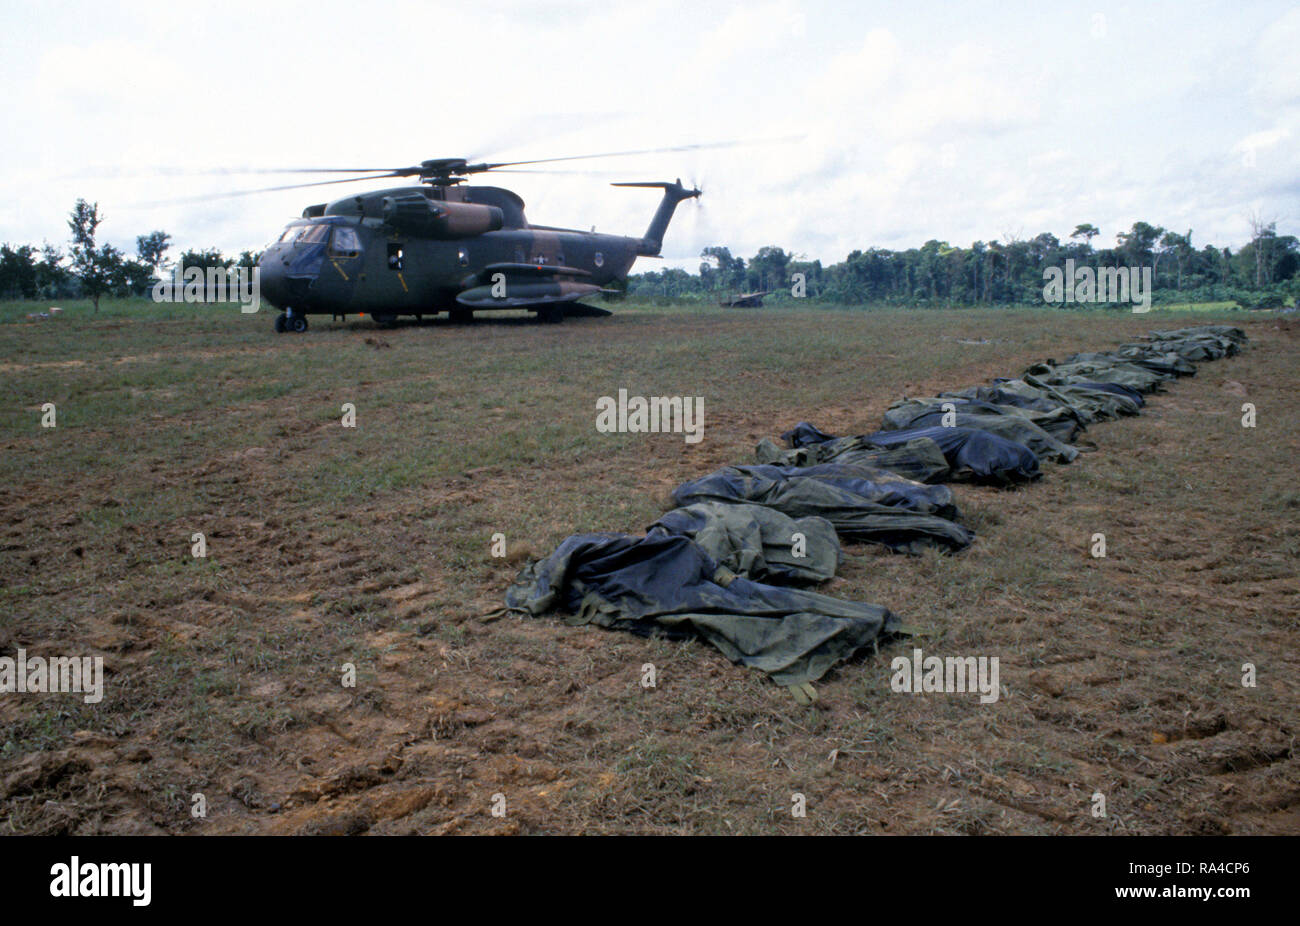 1978 - A US Air Force HH-53 Jolly Green Giant helicopter from the 55th Aerospace Rescue and Recovery Squadron stands by to assist in the removal of the remains of the victims of the Jonestown tragedy. - Stock Image